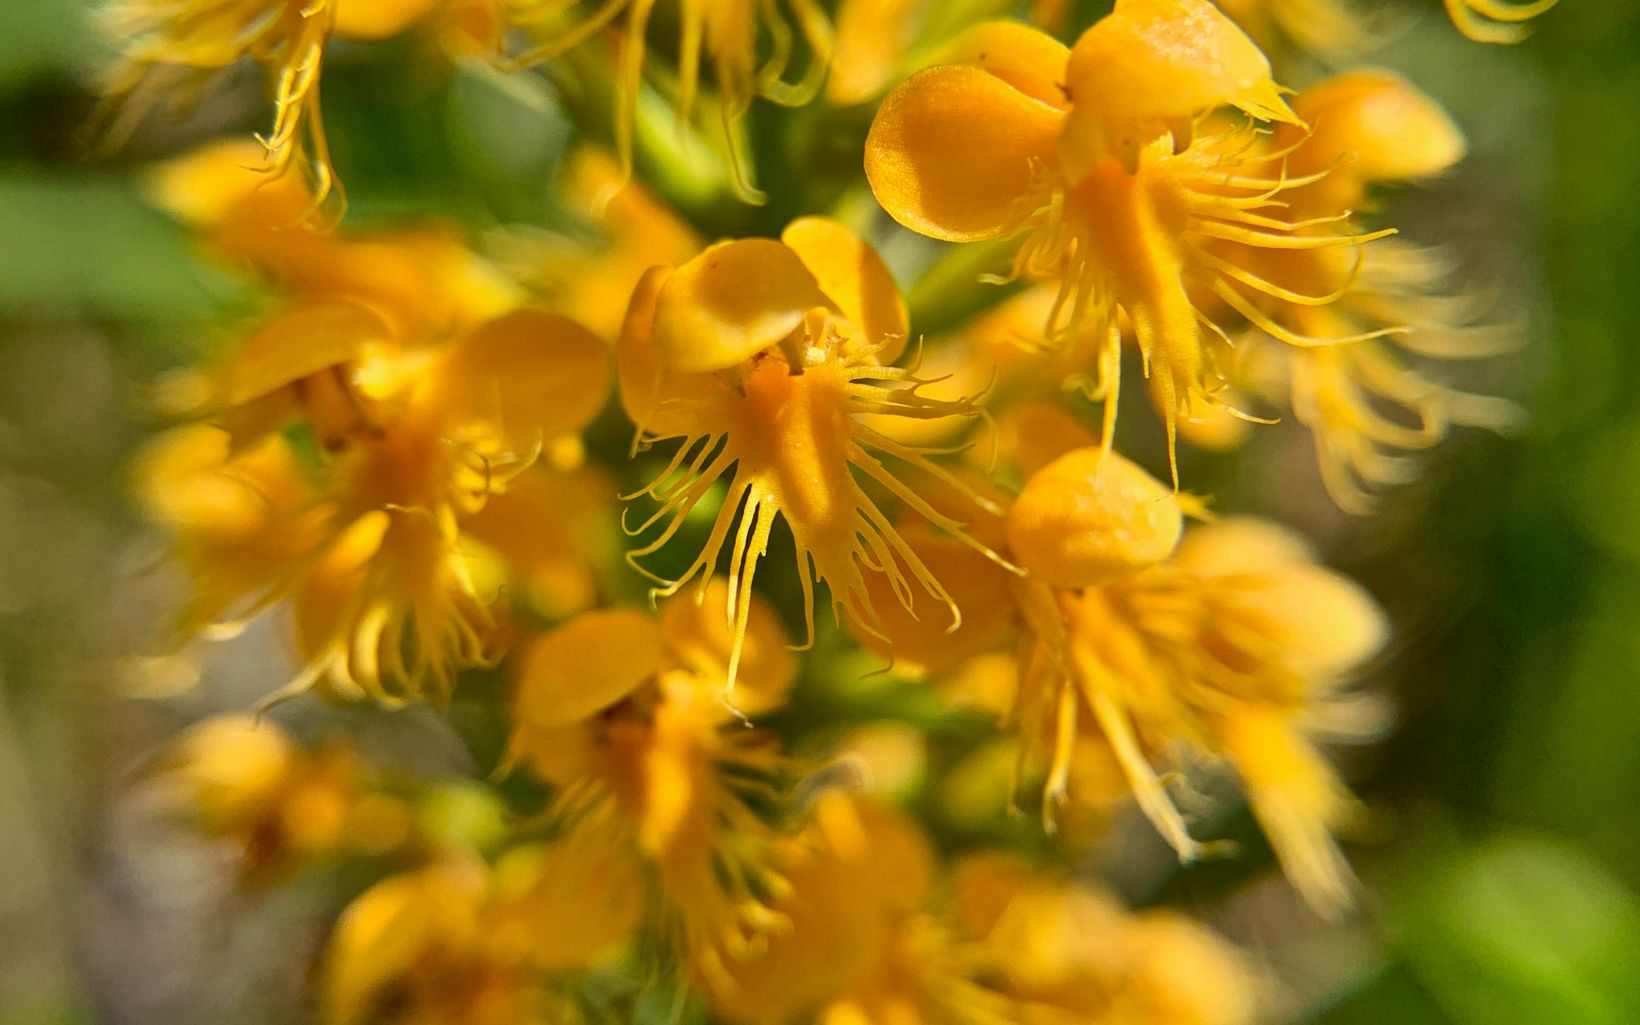 """Platanthera cristata has a rich yellow-orange hue and a short """"tongue"""" with tassles spreading out below."""